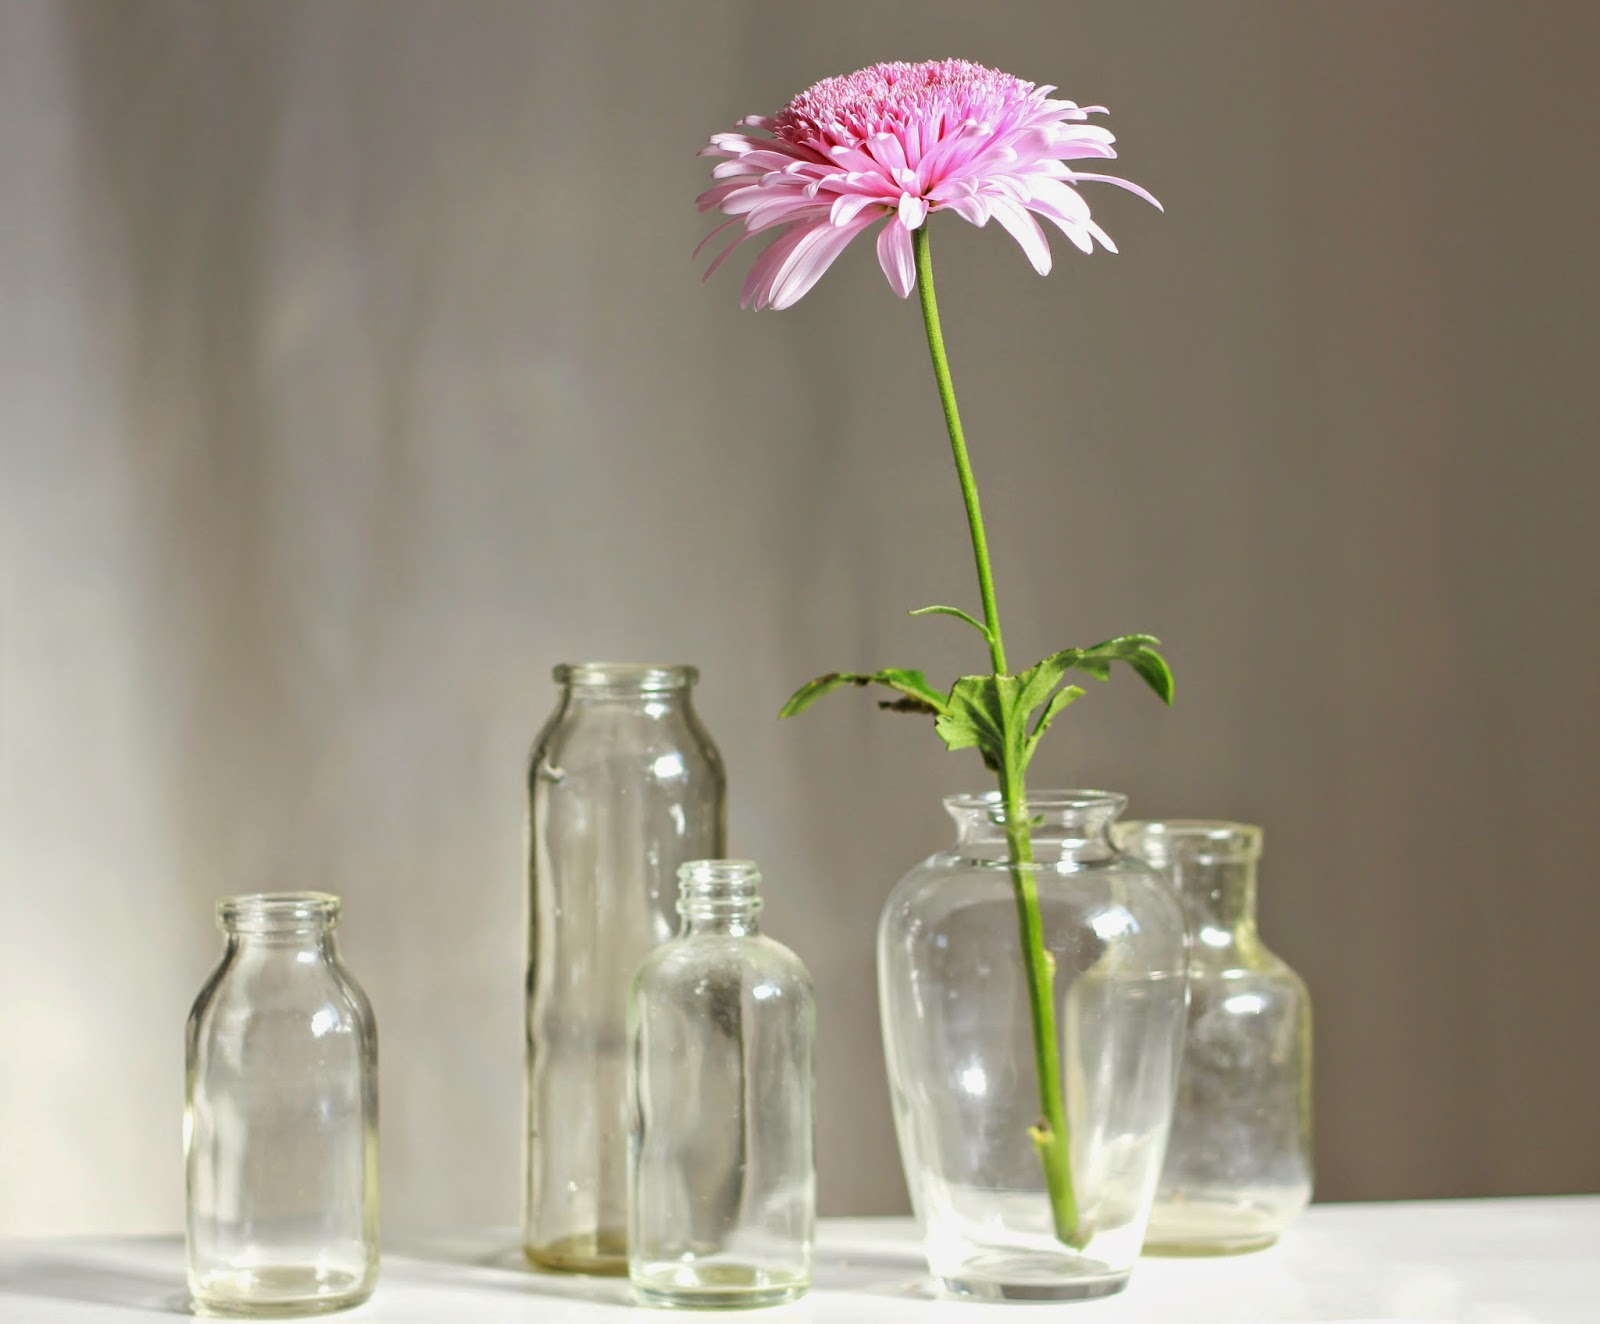 still life, flower, pink, glass jars, simplicity